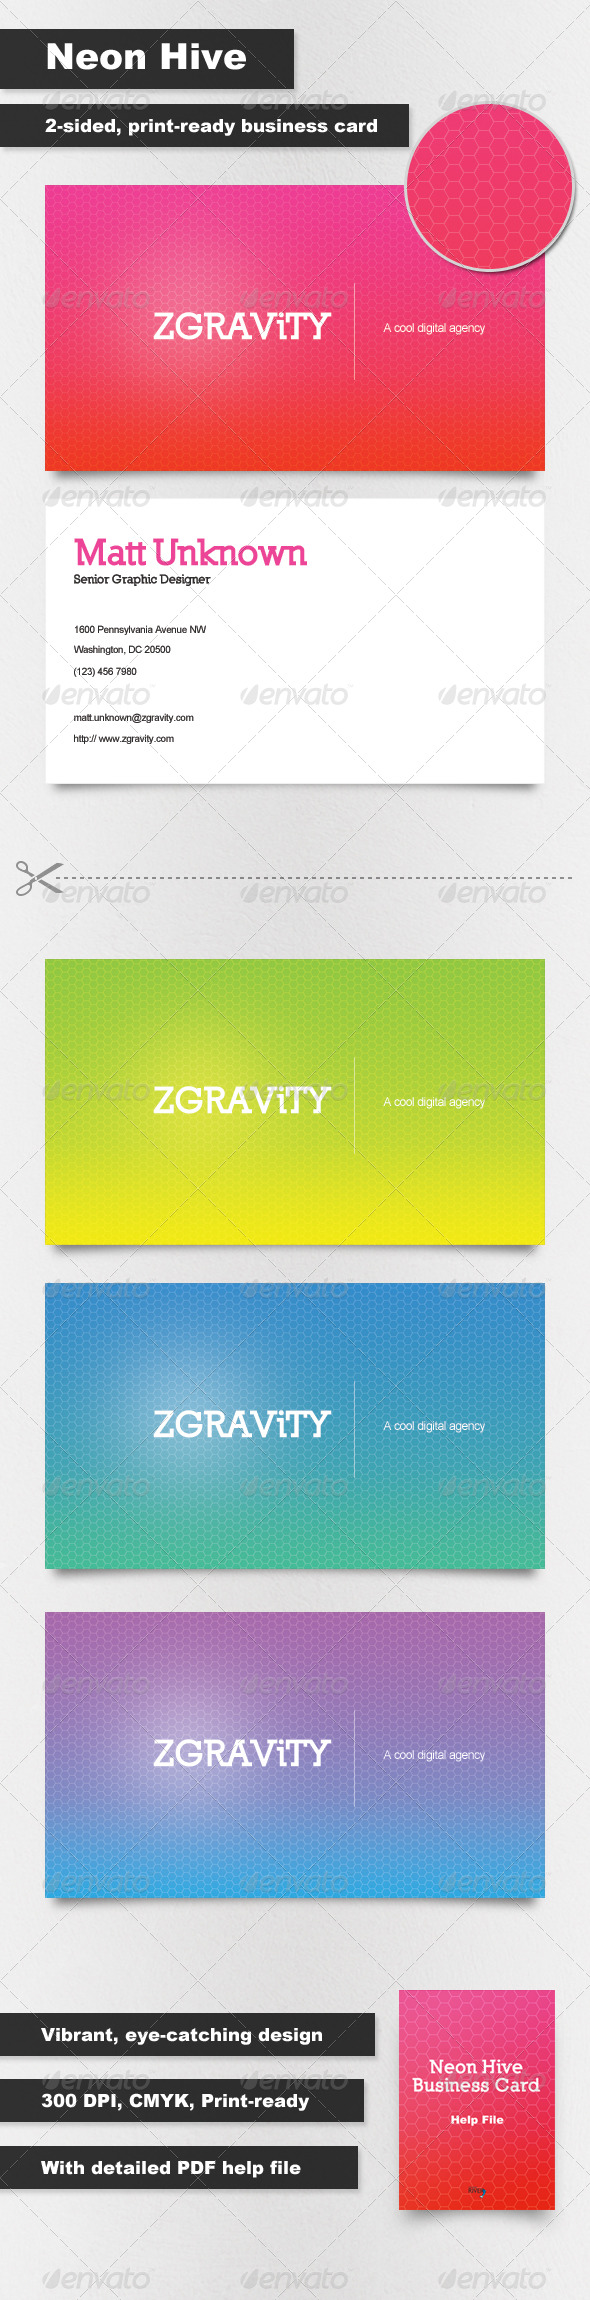 GraphicRiver Neon Hive Business Cards 162778